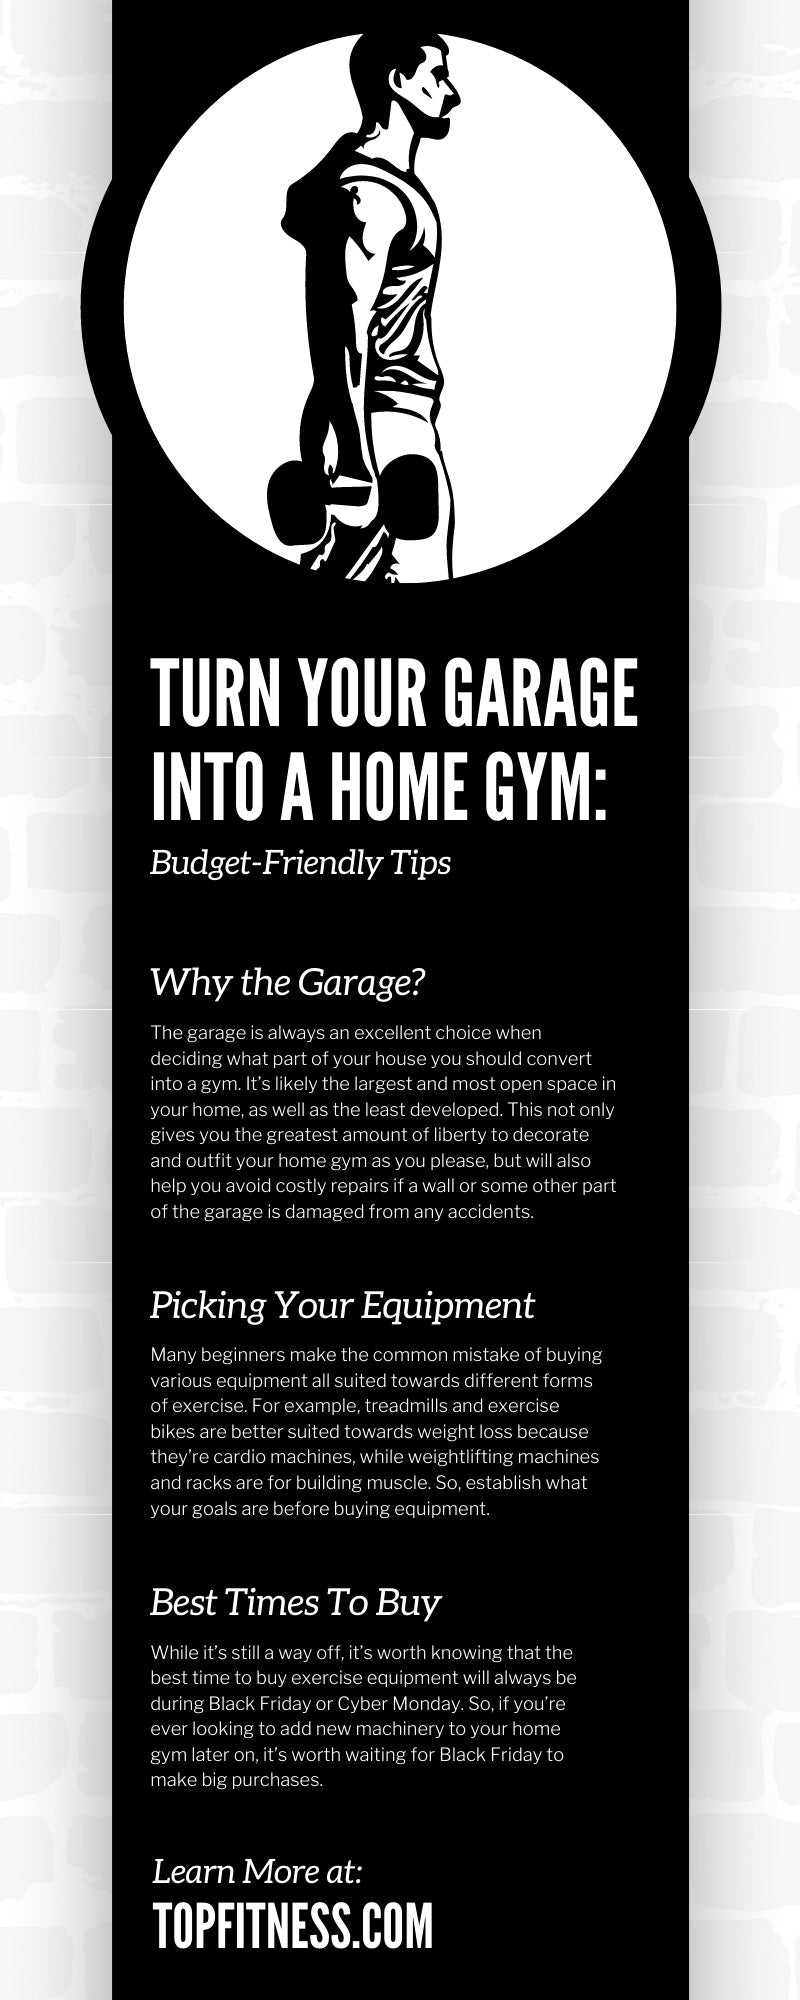 Turn Your Garage Into a Home Gym: Budget-Friendly Tips